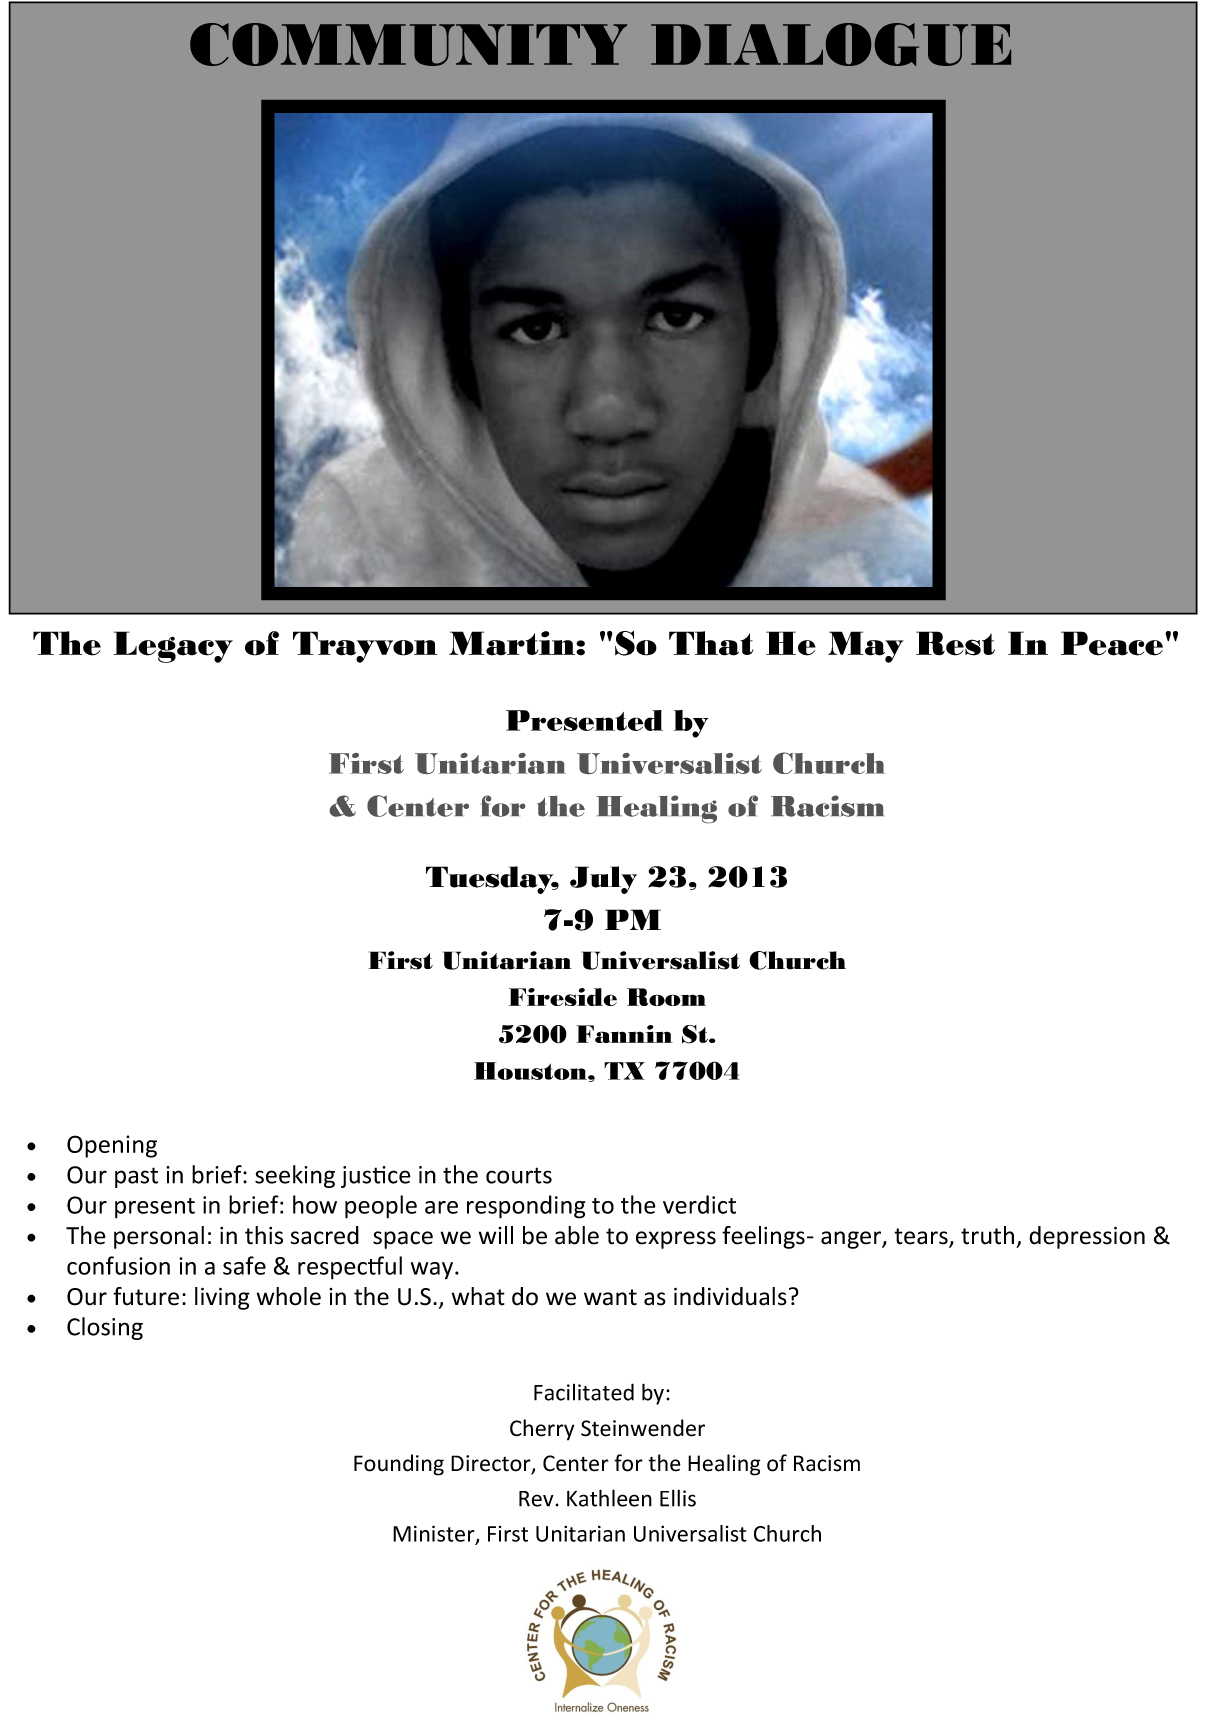 The Legacy of Trayvon Martin: